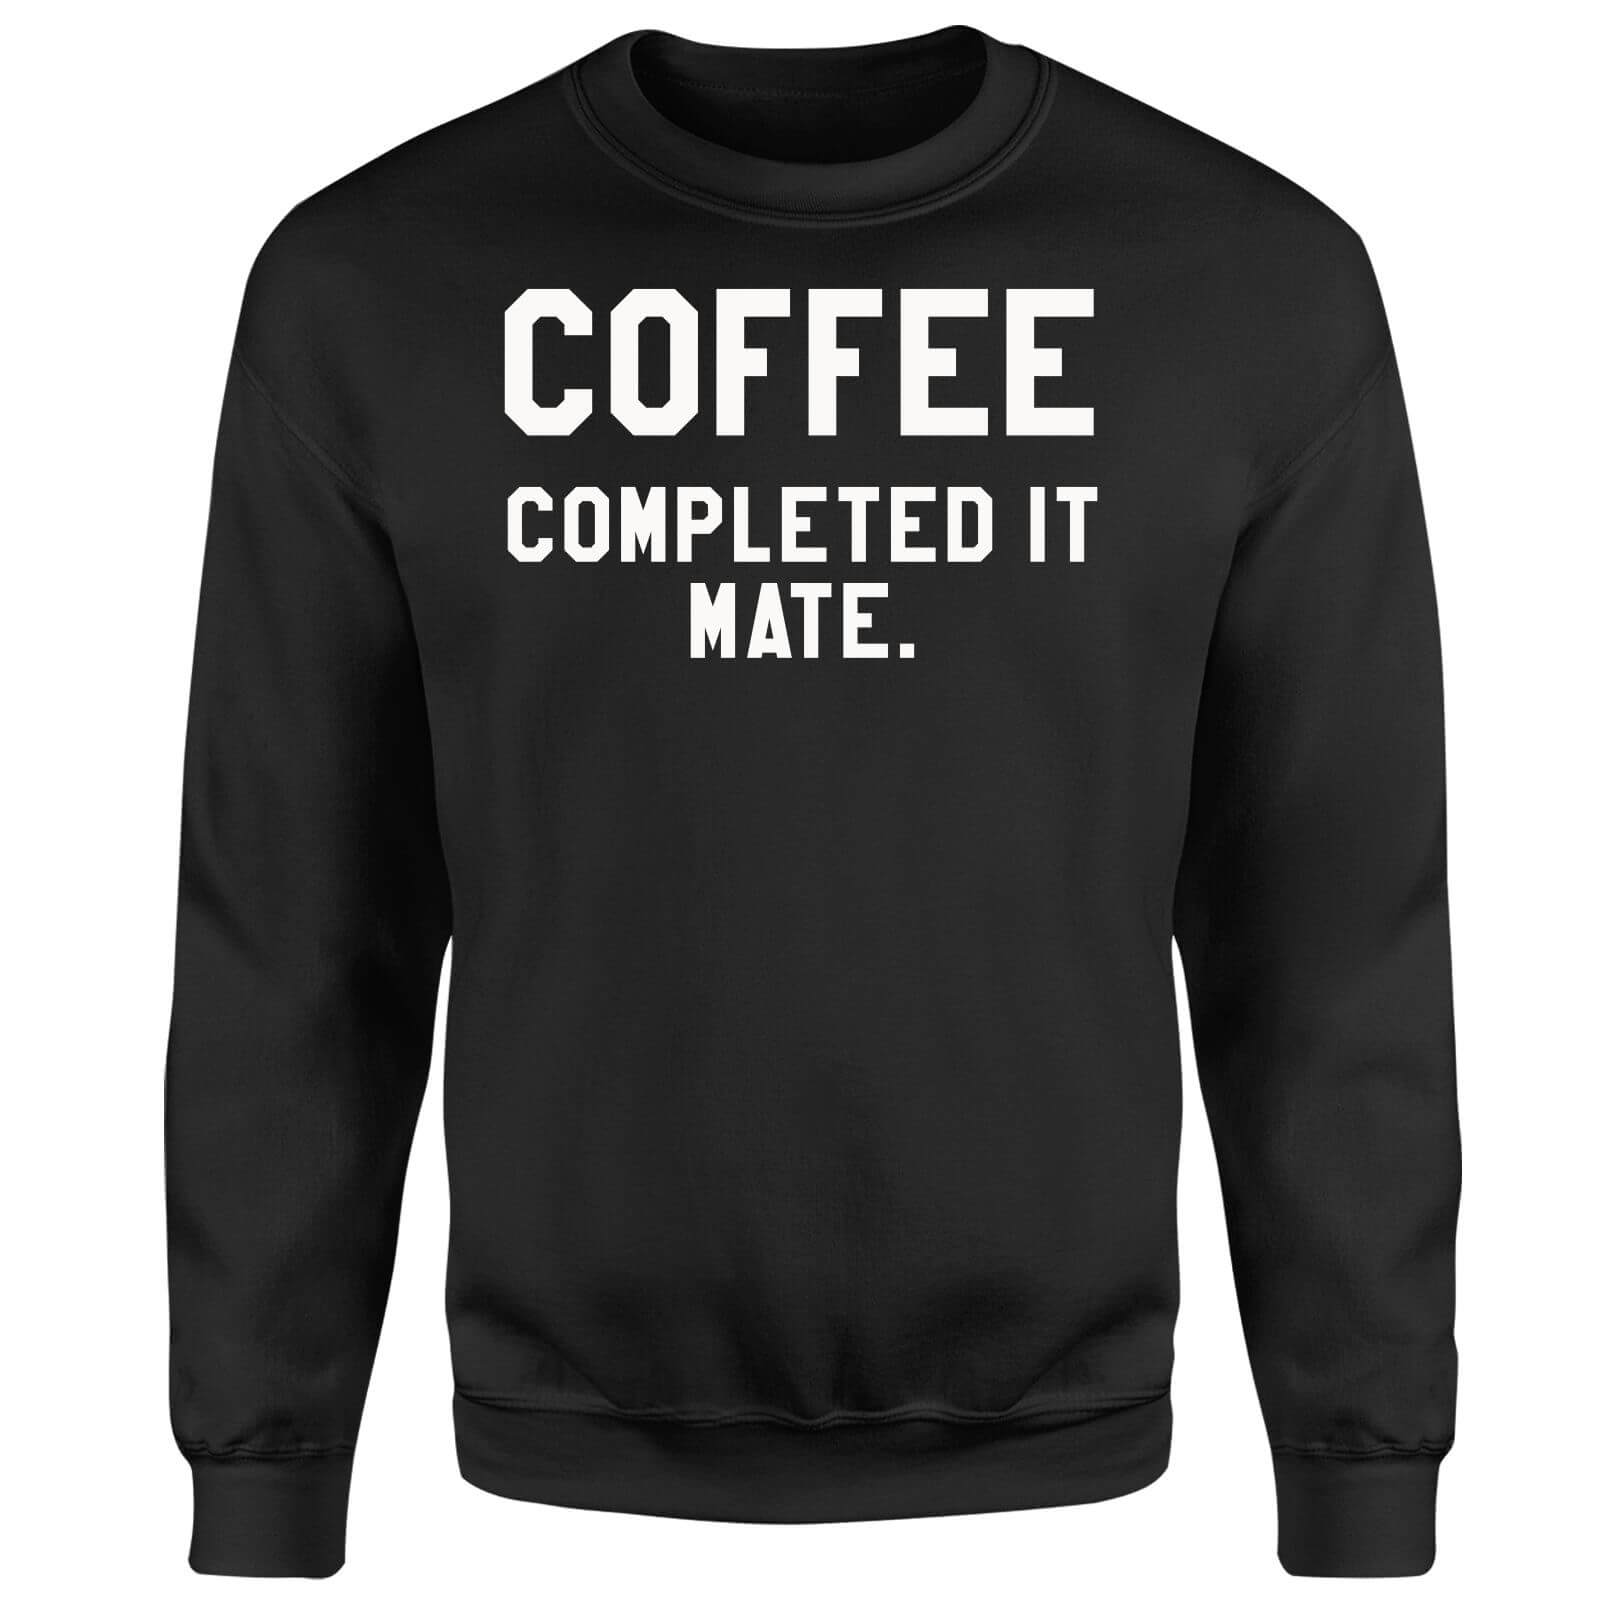 Coffee Completed it Mate Sweatshirt - Black